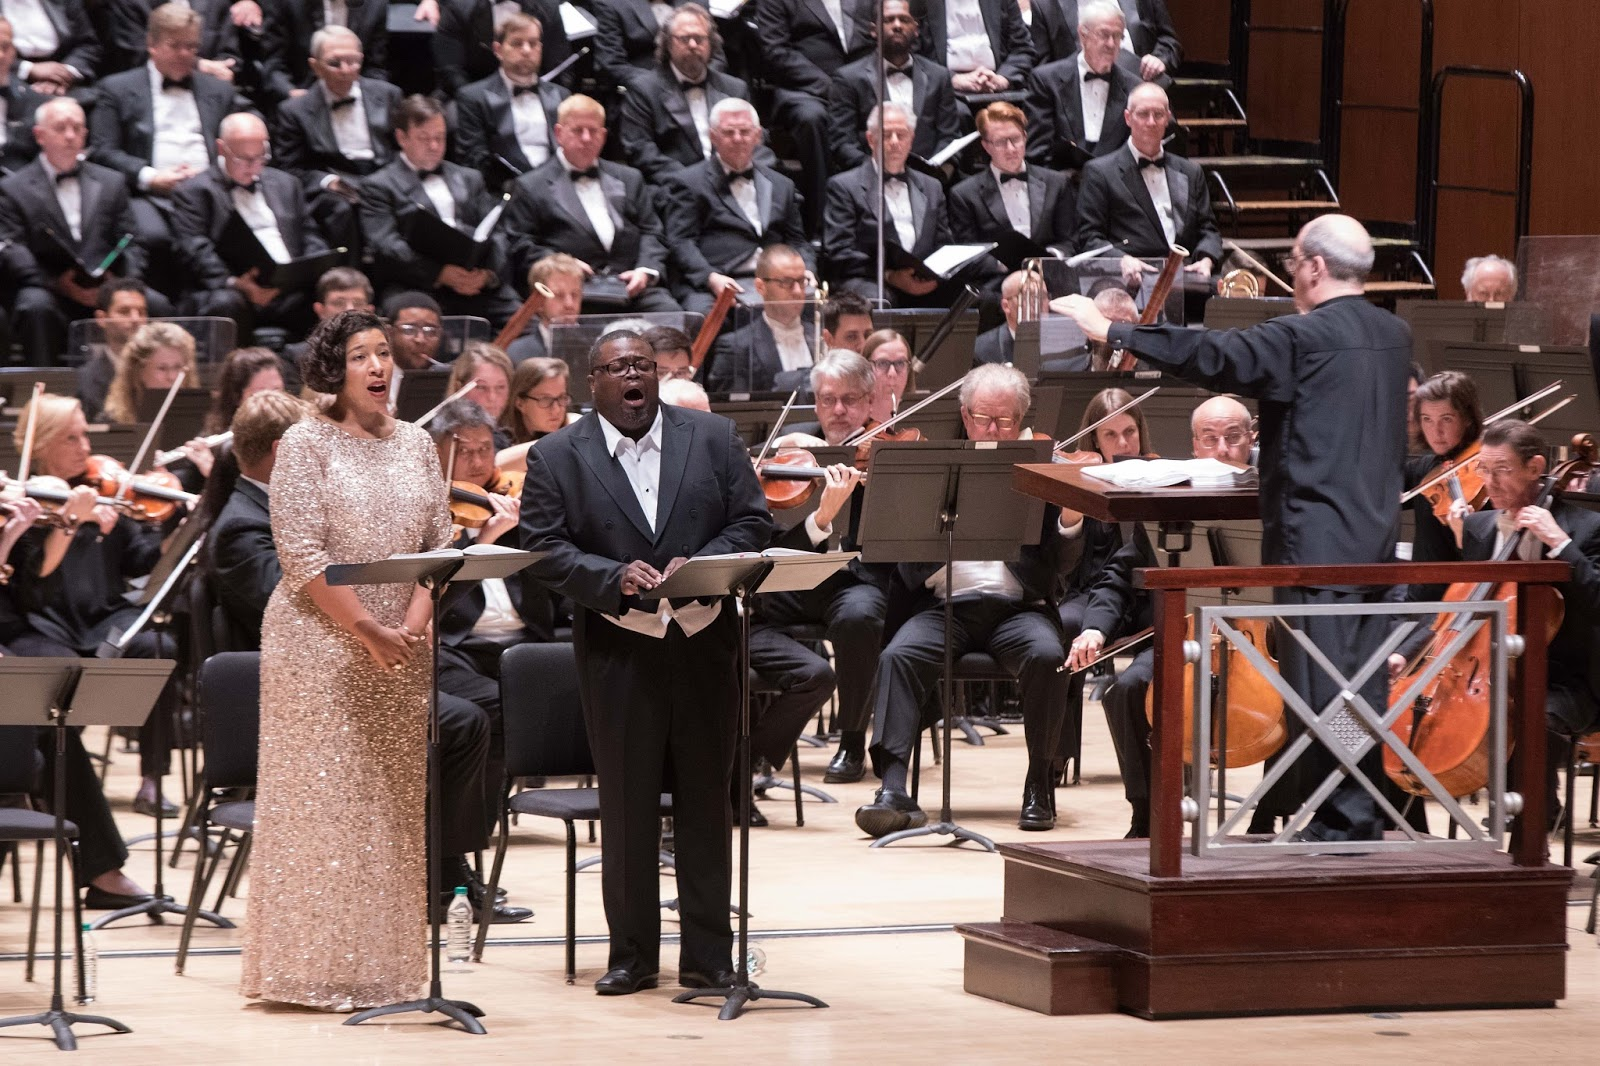 IN PERFORMANCE: (from left to right) soprano MARY ELIZABETH WILLIAMS as Desdemona, tenor RUSSELL THOMAS as Otello, and Maestro ROBERT SPANO in Atlanta Symphony Orchestra's concert performance of Giuseppe Verdi's OTELLO, 7 October 2017 [Photo by Jeff Roffman, © by Atlanta Symphony Orchestra]